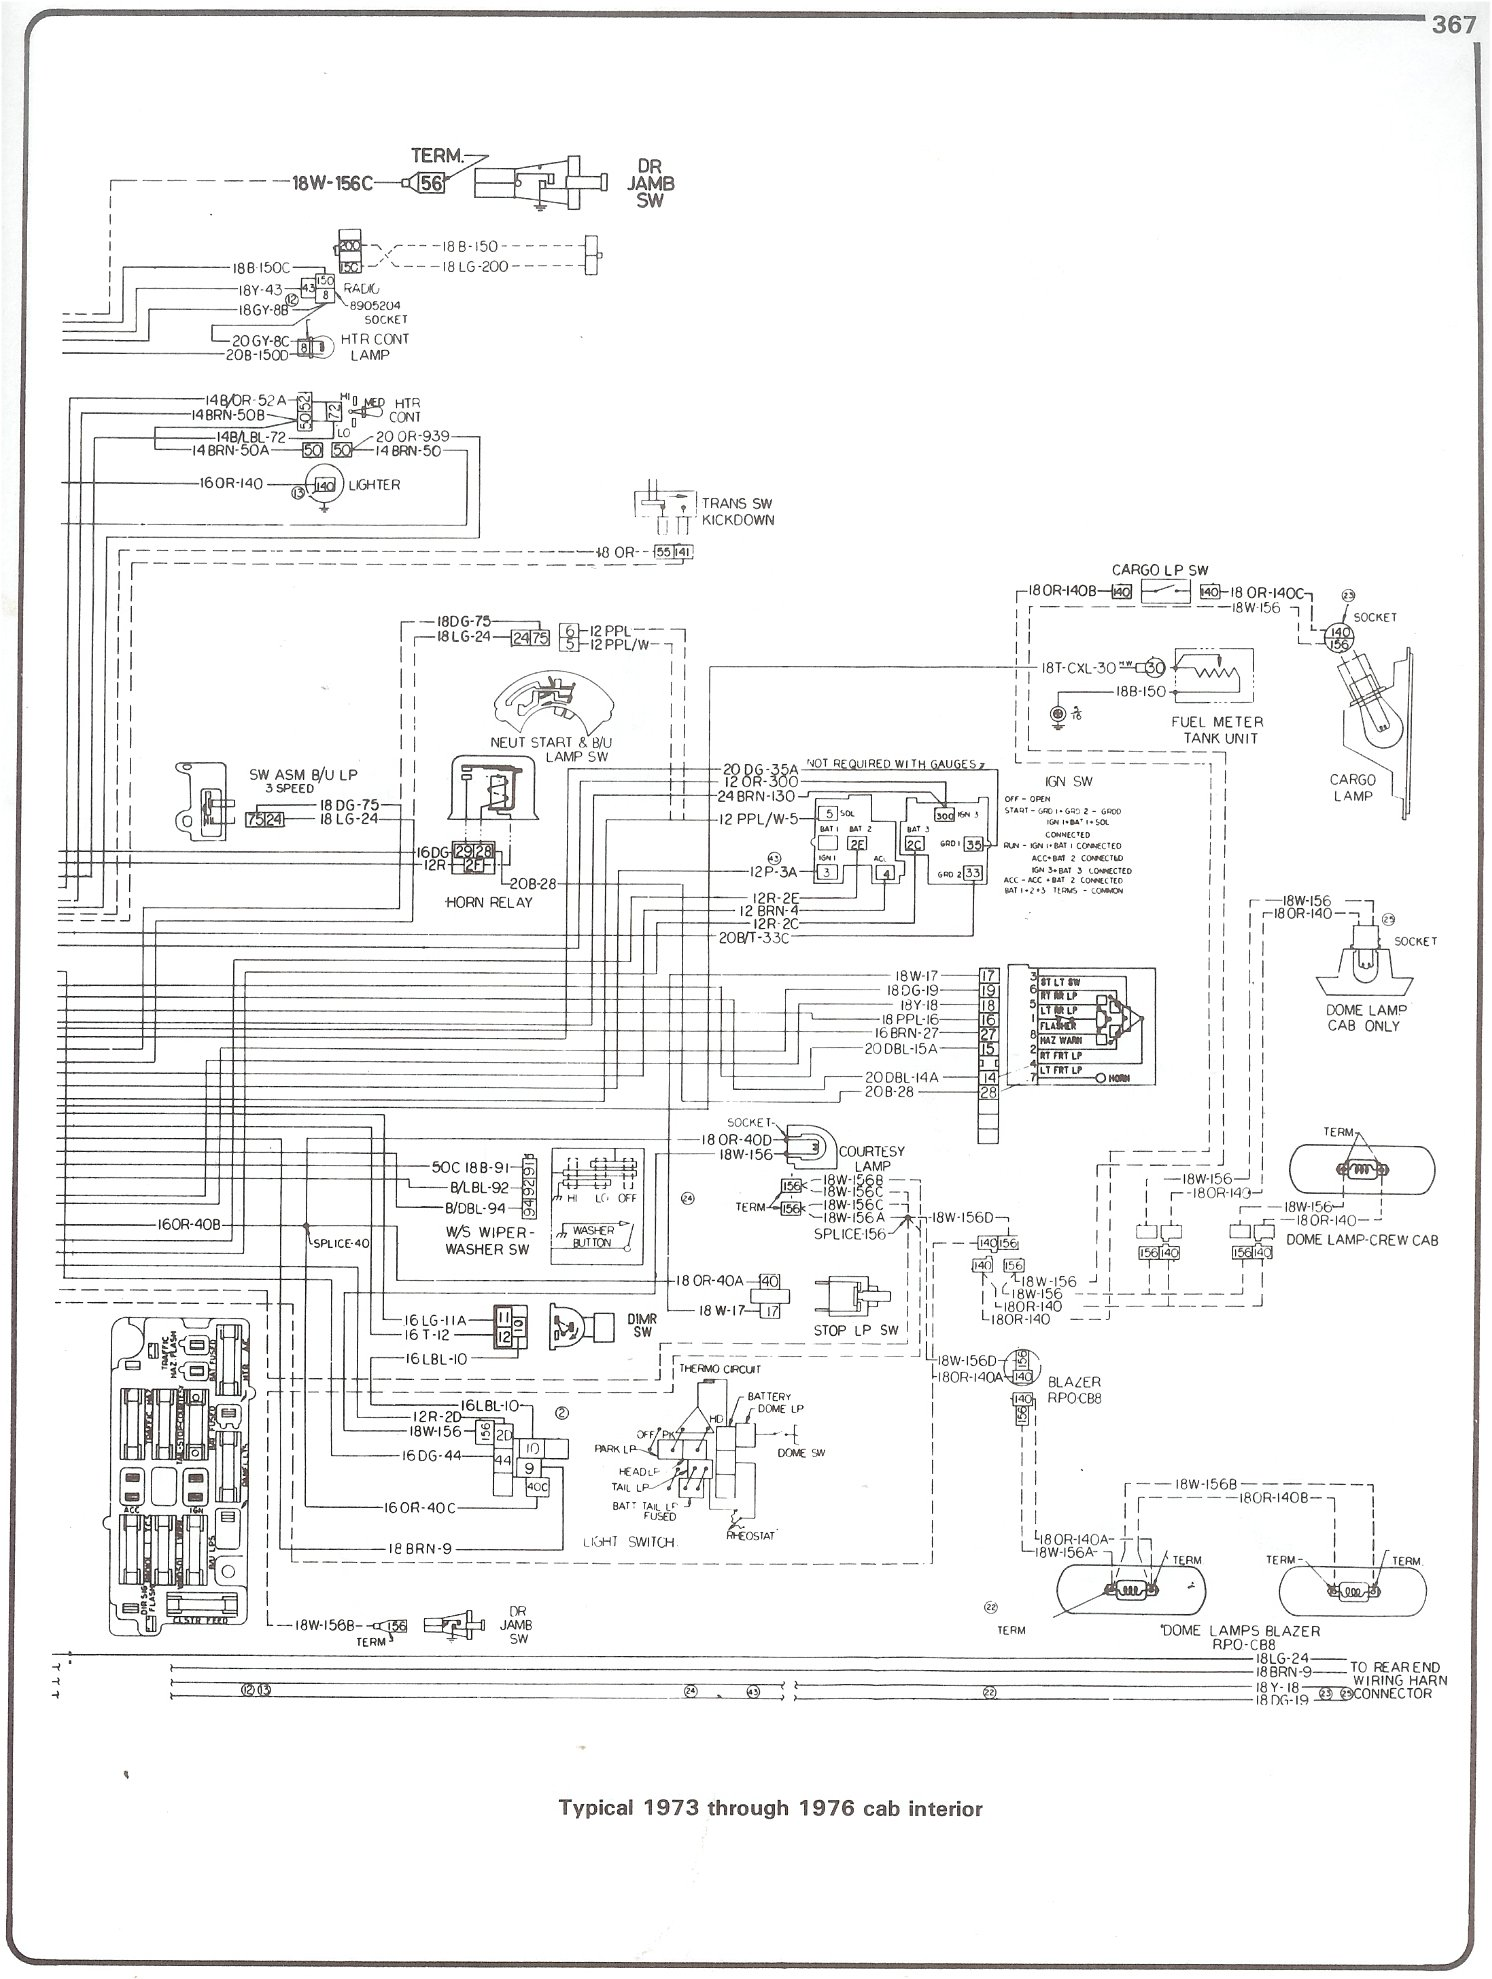 1983 mustang ignition wiring diagram | wiring library chevrolet 1983 pickup wire diagram 1983 gmc wire diagram #3